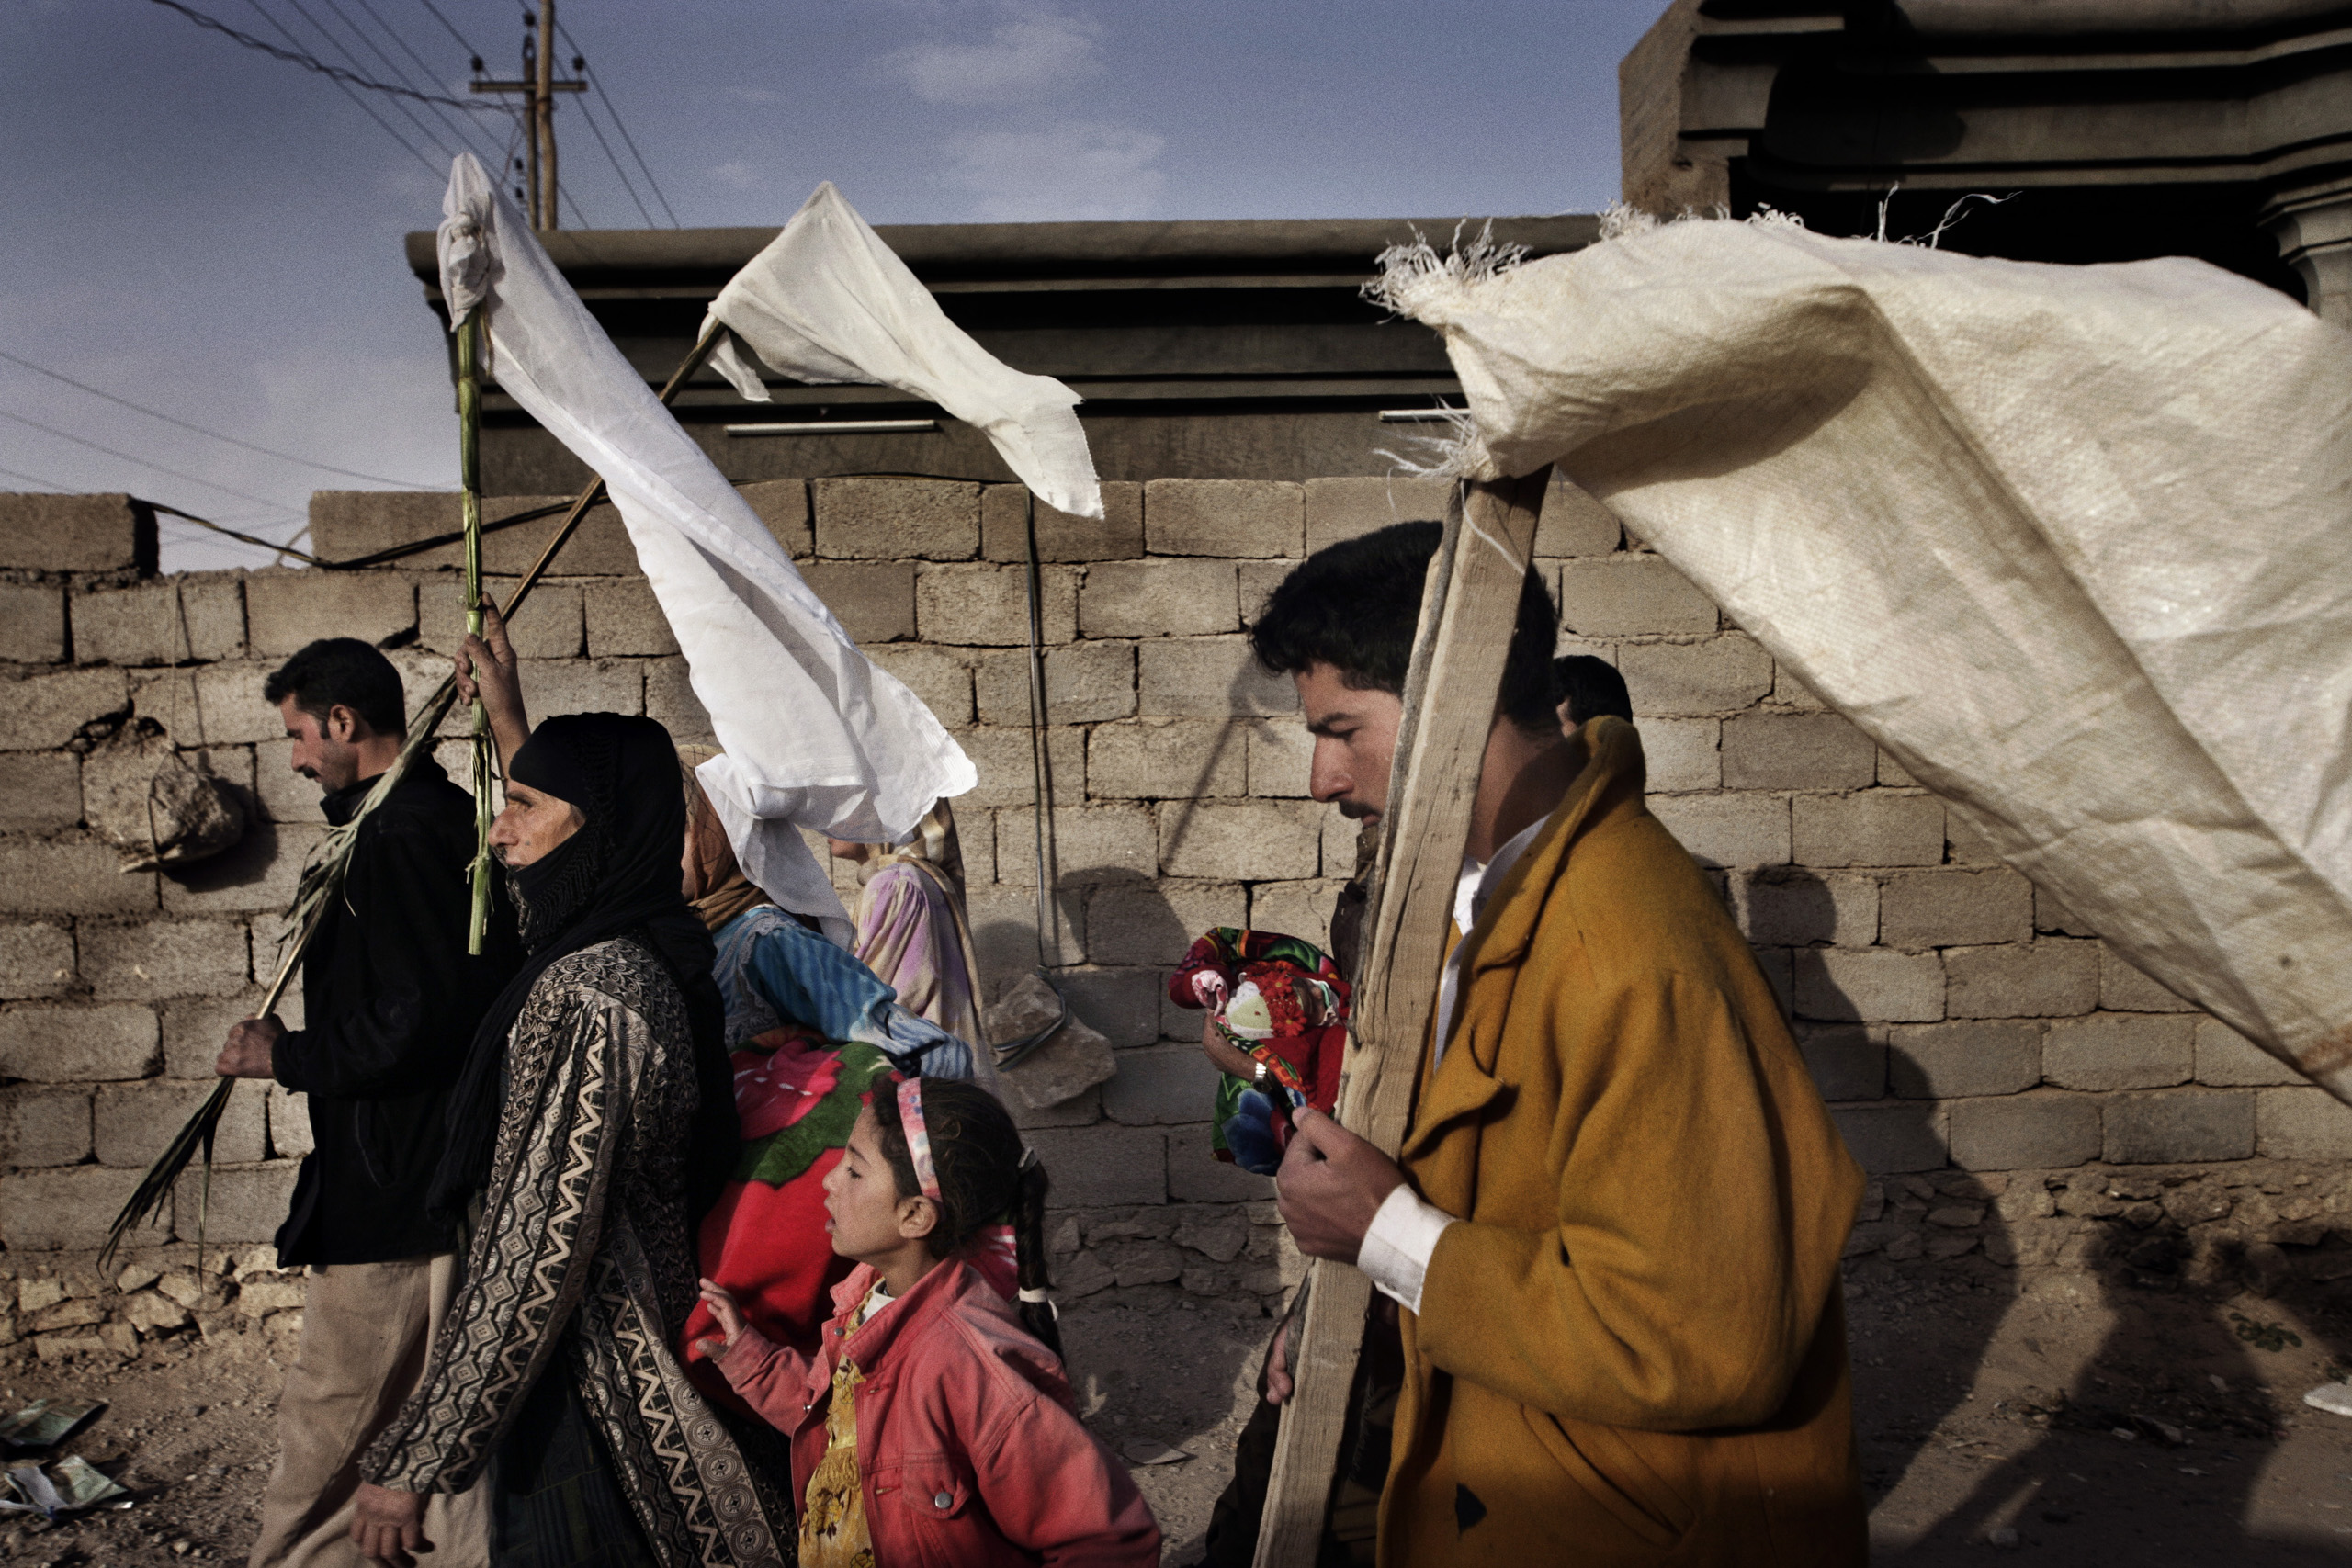 Iraqi civilians wave white flags for protection while fleeing the city of Husaybah during Operation Steel Curtain, a joint American-Iraqi offensive to stop the flow of insurgents crossing the Iraqi-Syrian border, Nov. 7, 2005.